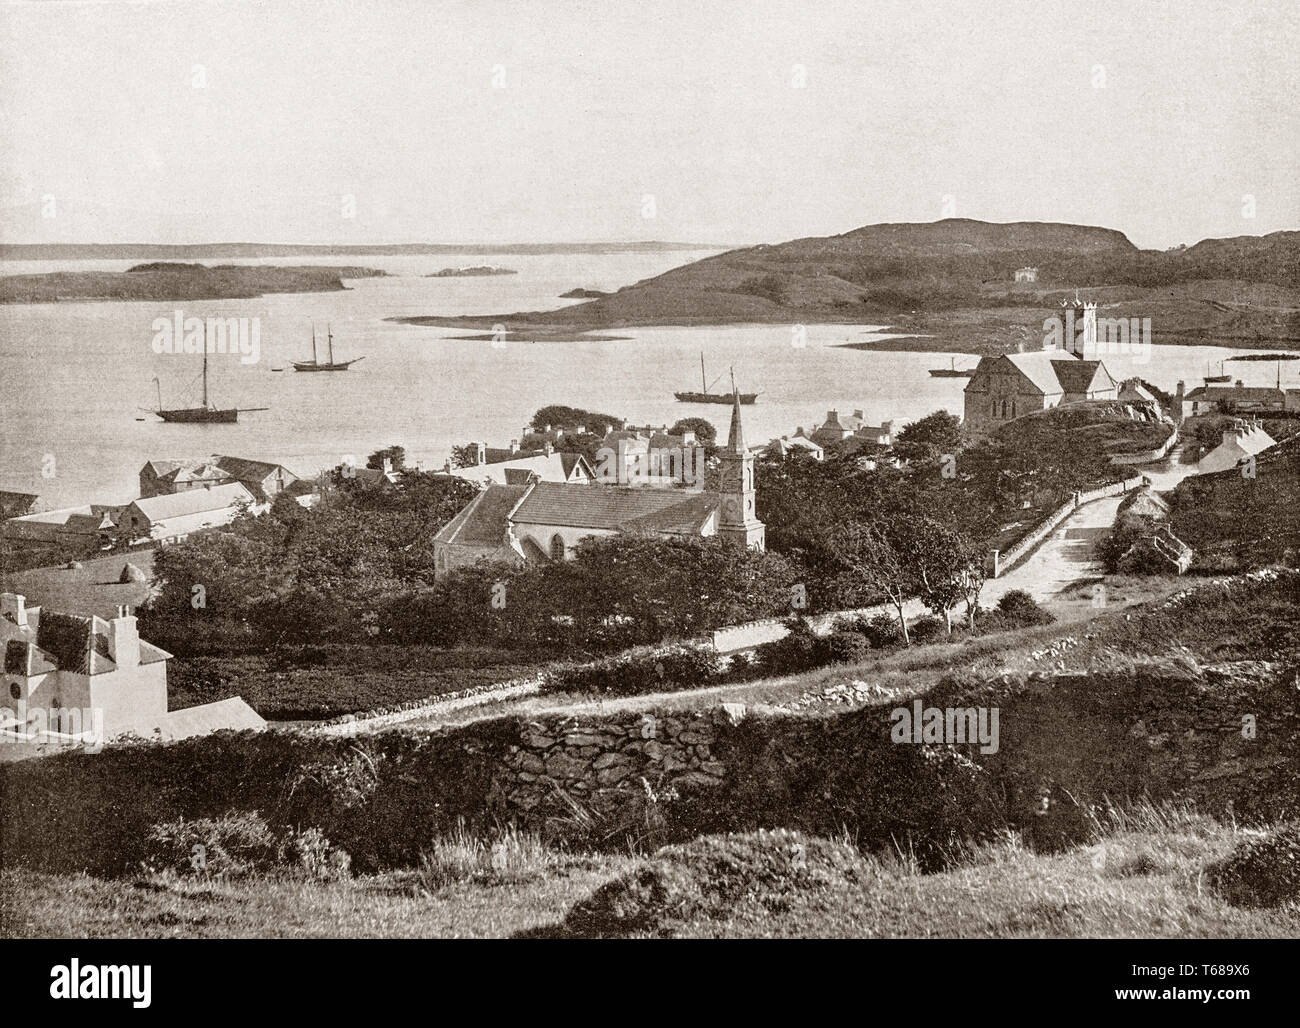 A 19th Century view of Killybegs, situated at the head of a scenic harbour in County Donegal, Ulster Provence, Ireland. It is now the largest fishing port on the island of Ireland. Stock Photo